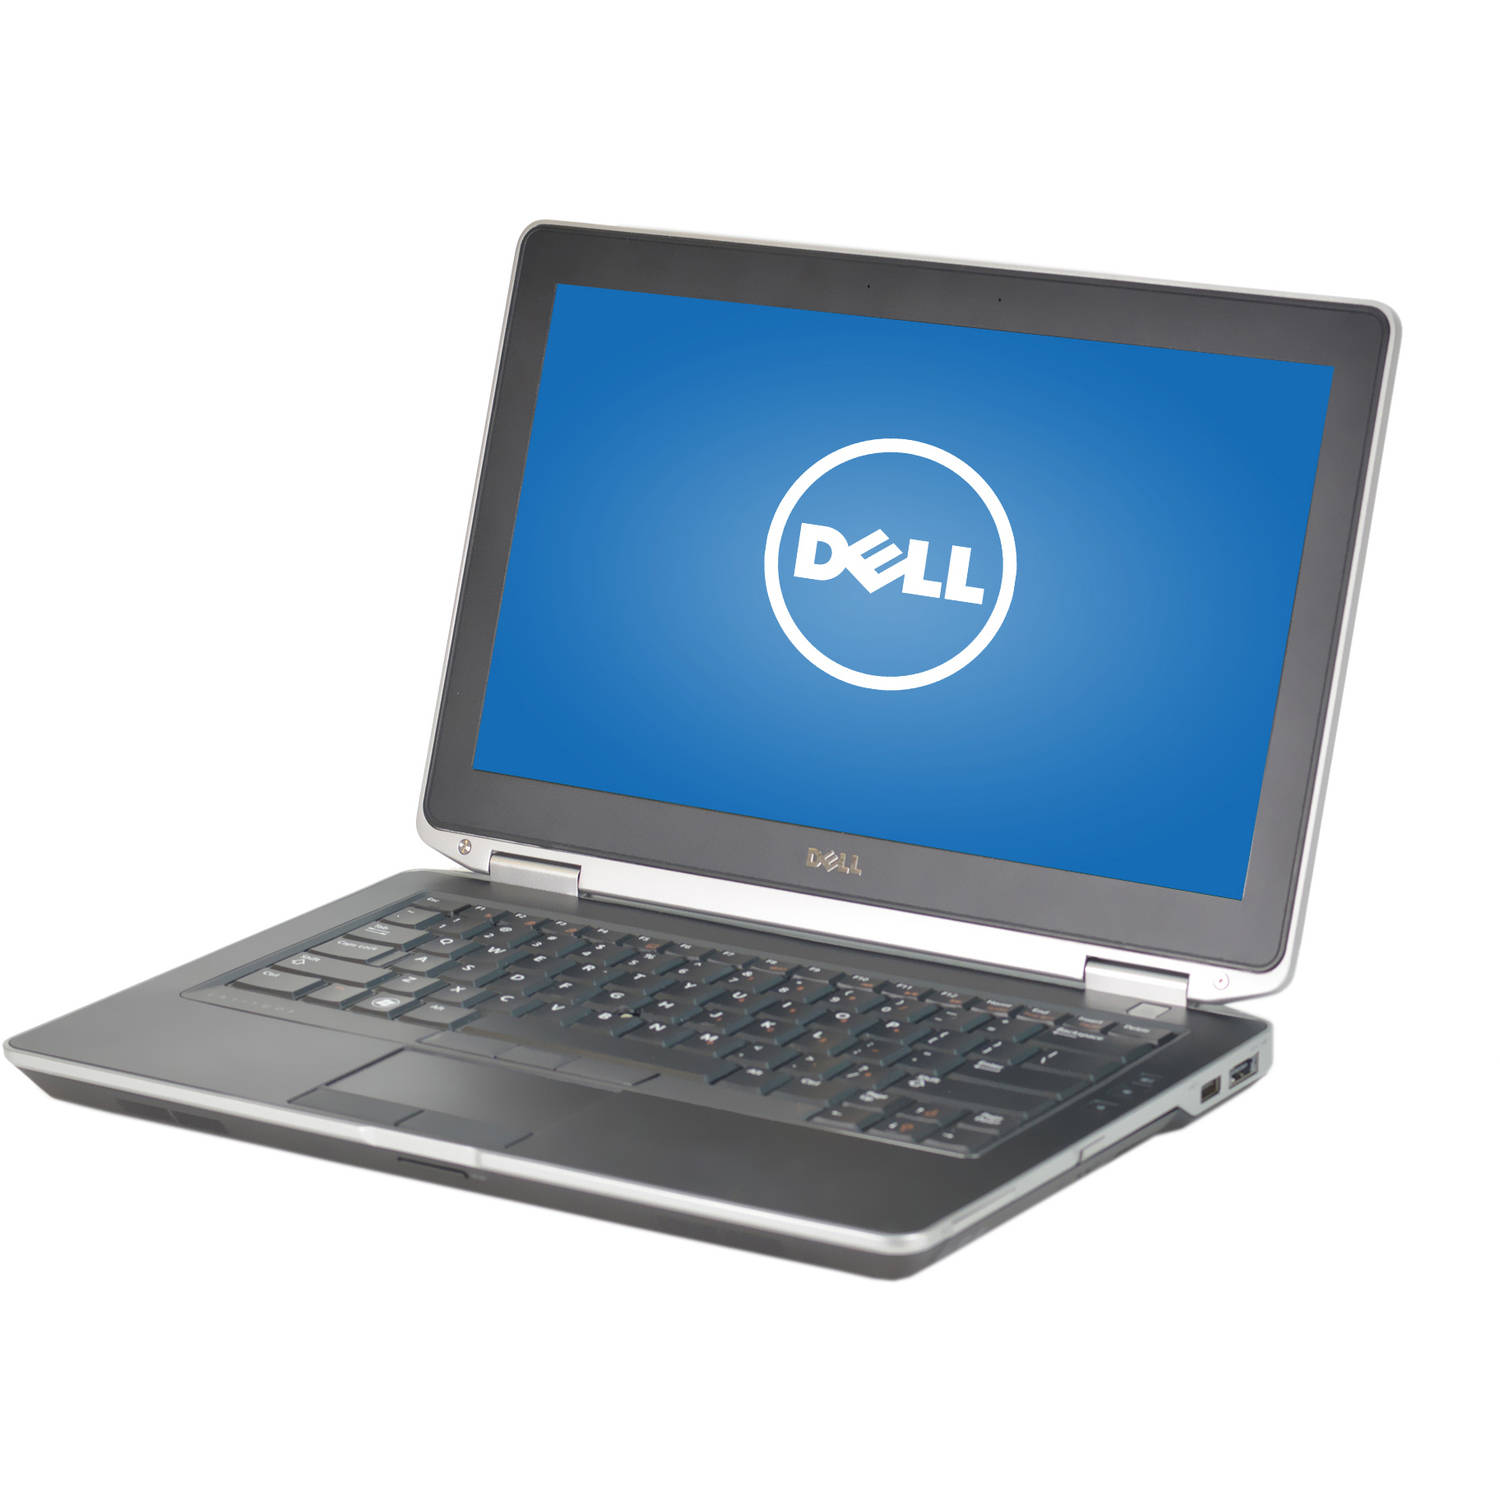 Refurbished Dell Silver 13.3 Latitude E6330 WA5 - 1103 Laptop PC with Intel Core i5 - 3320M Processor, 8GB Memory, 256GB Solid State Drive and Windows 10 Pro